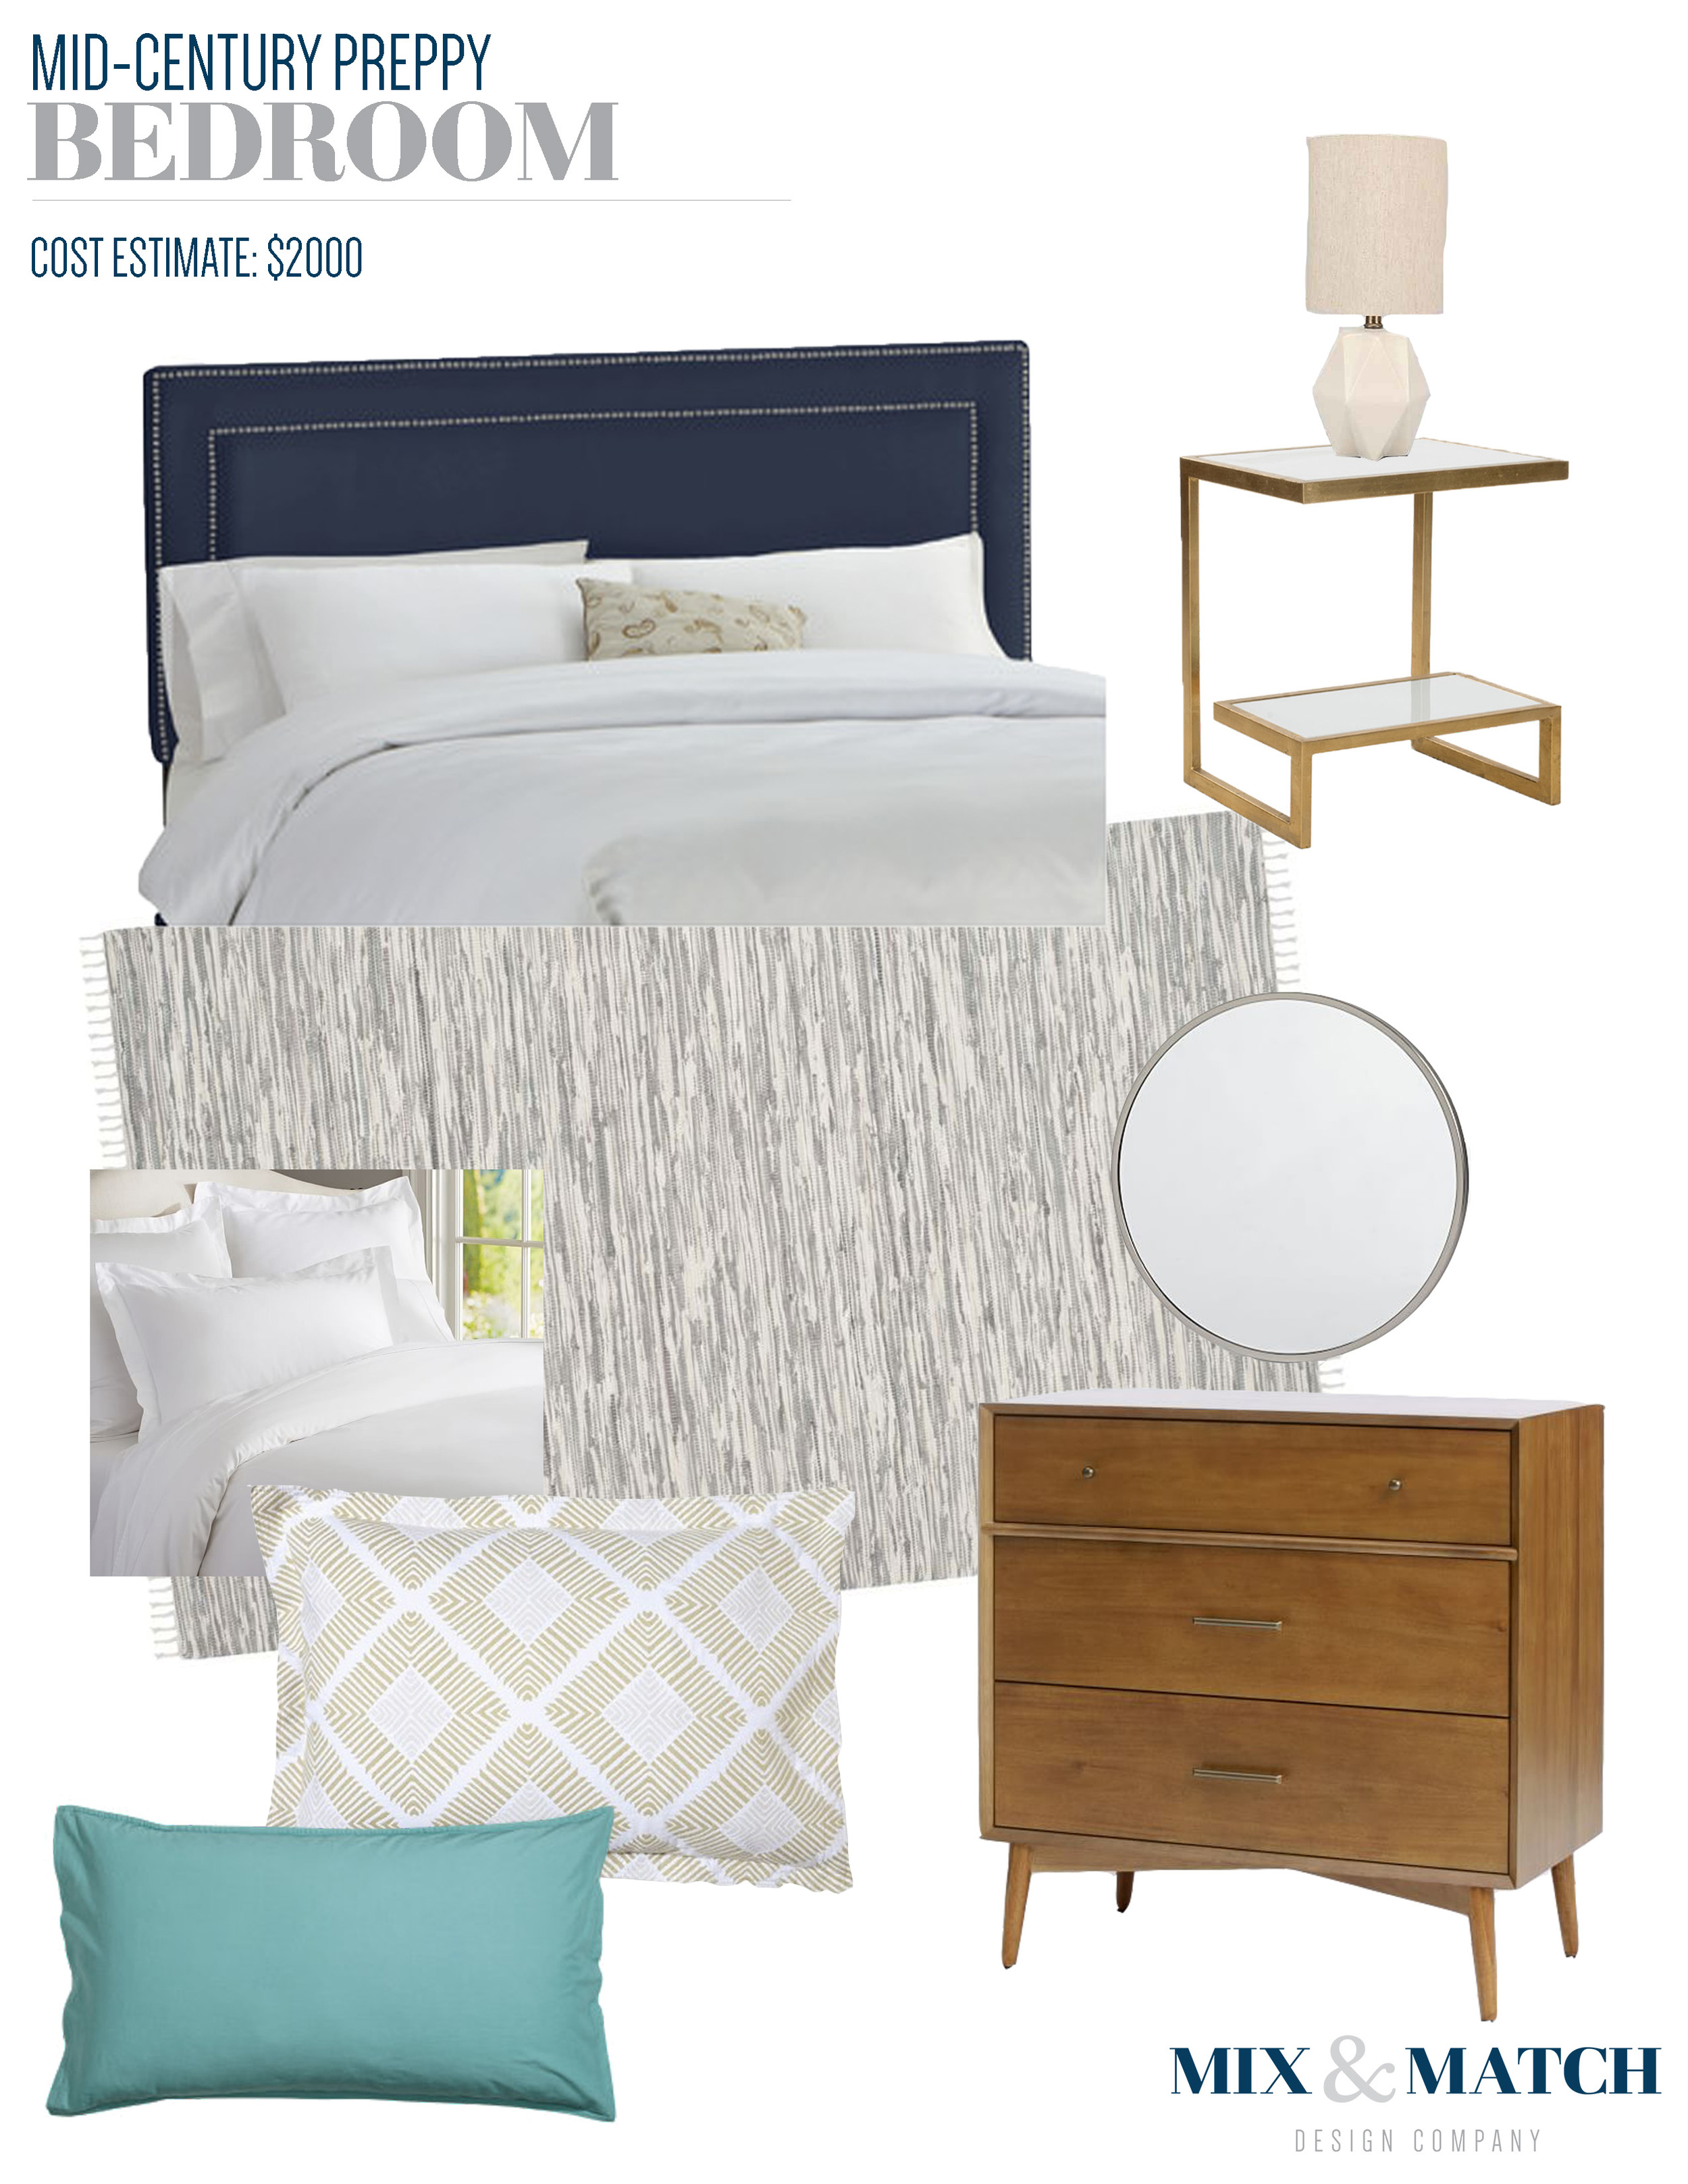 Mid-Century Preppy Bedroom.jpg